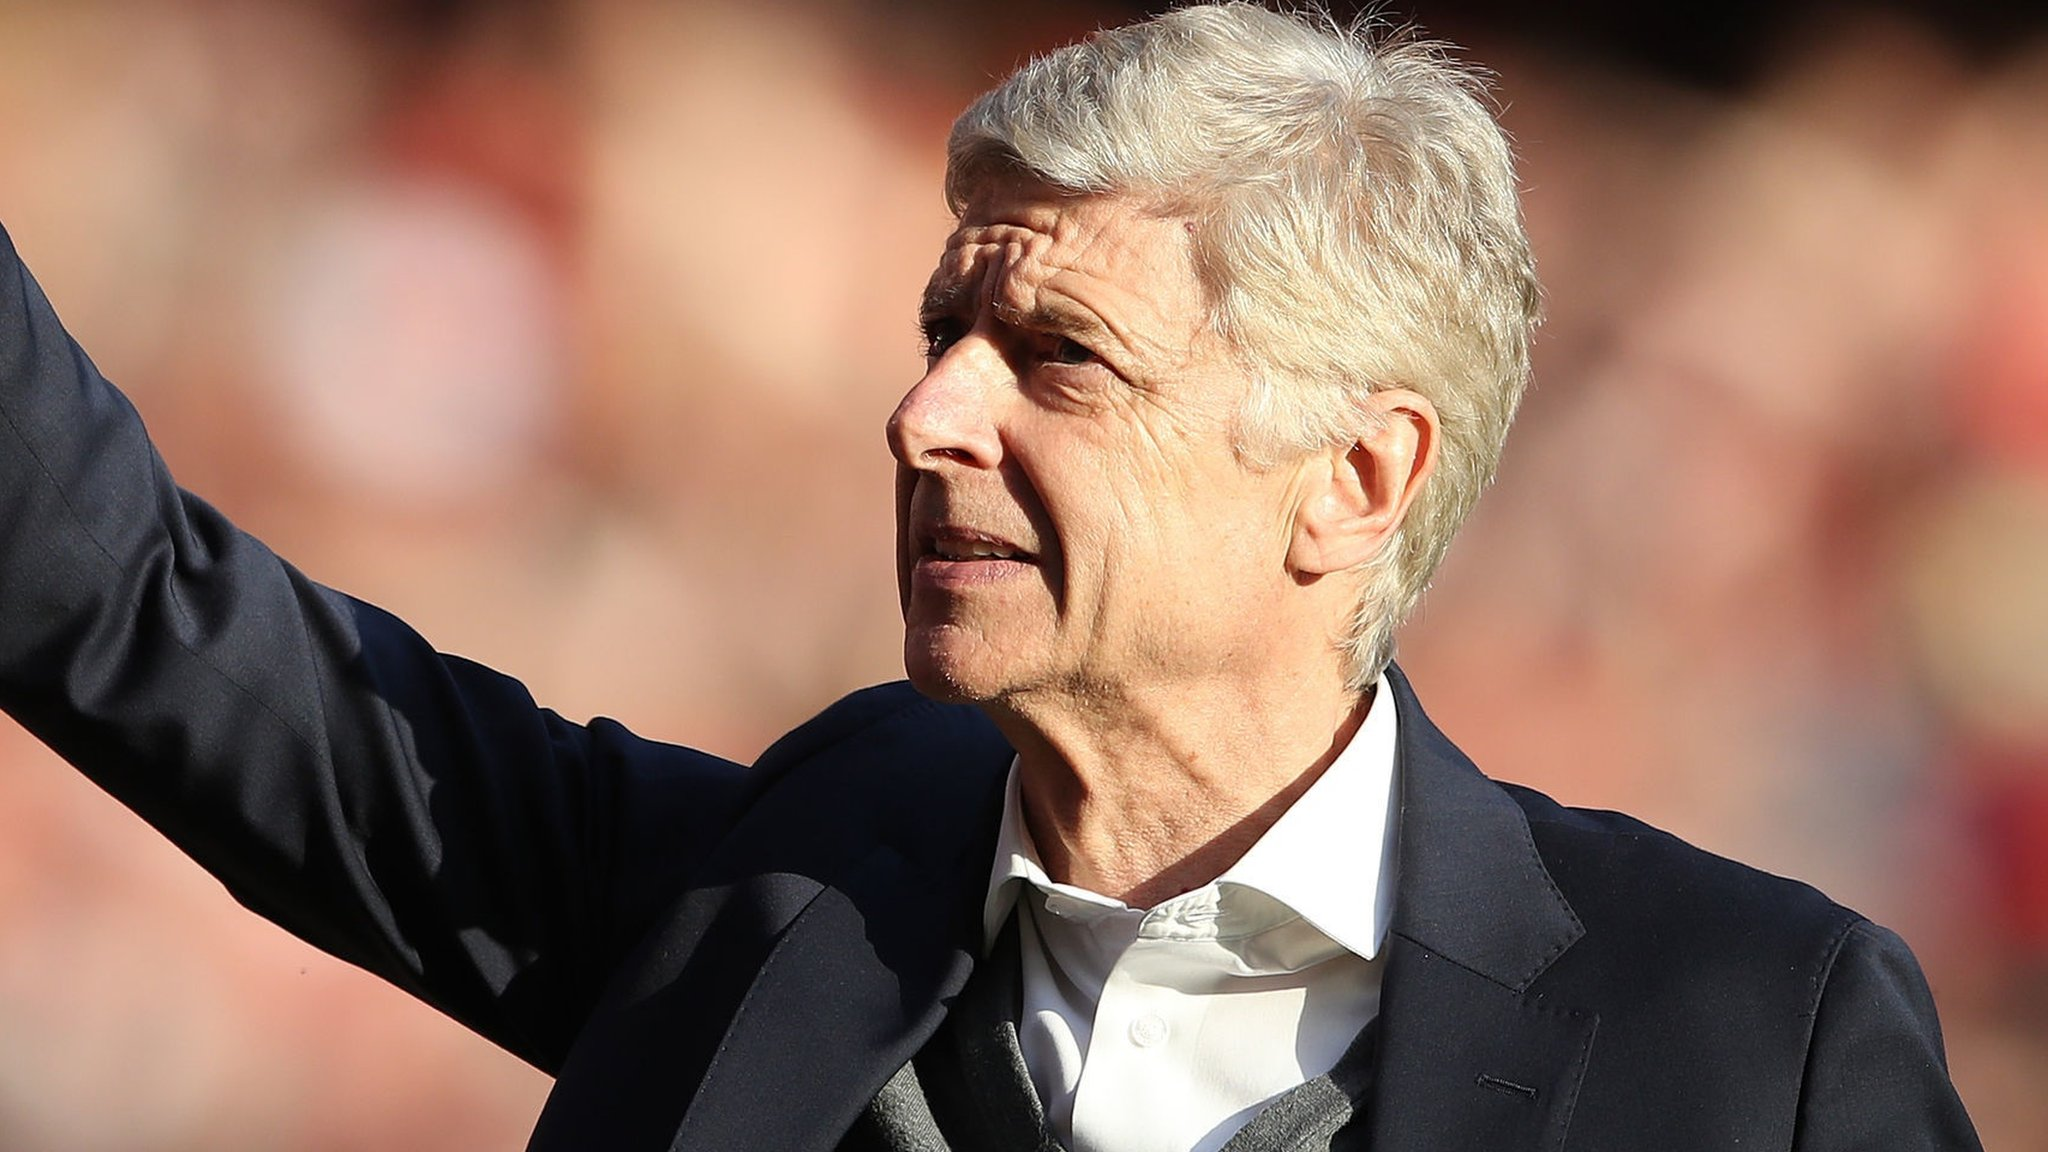 Wenger has offers from 'all over the world' - vote on his next destination